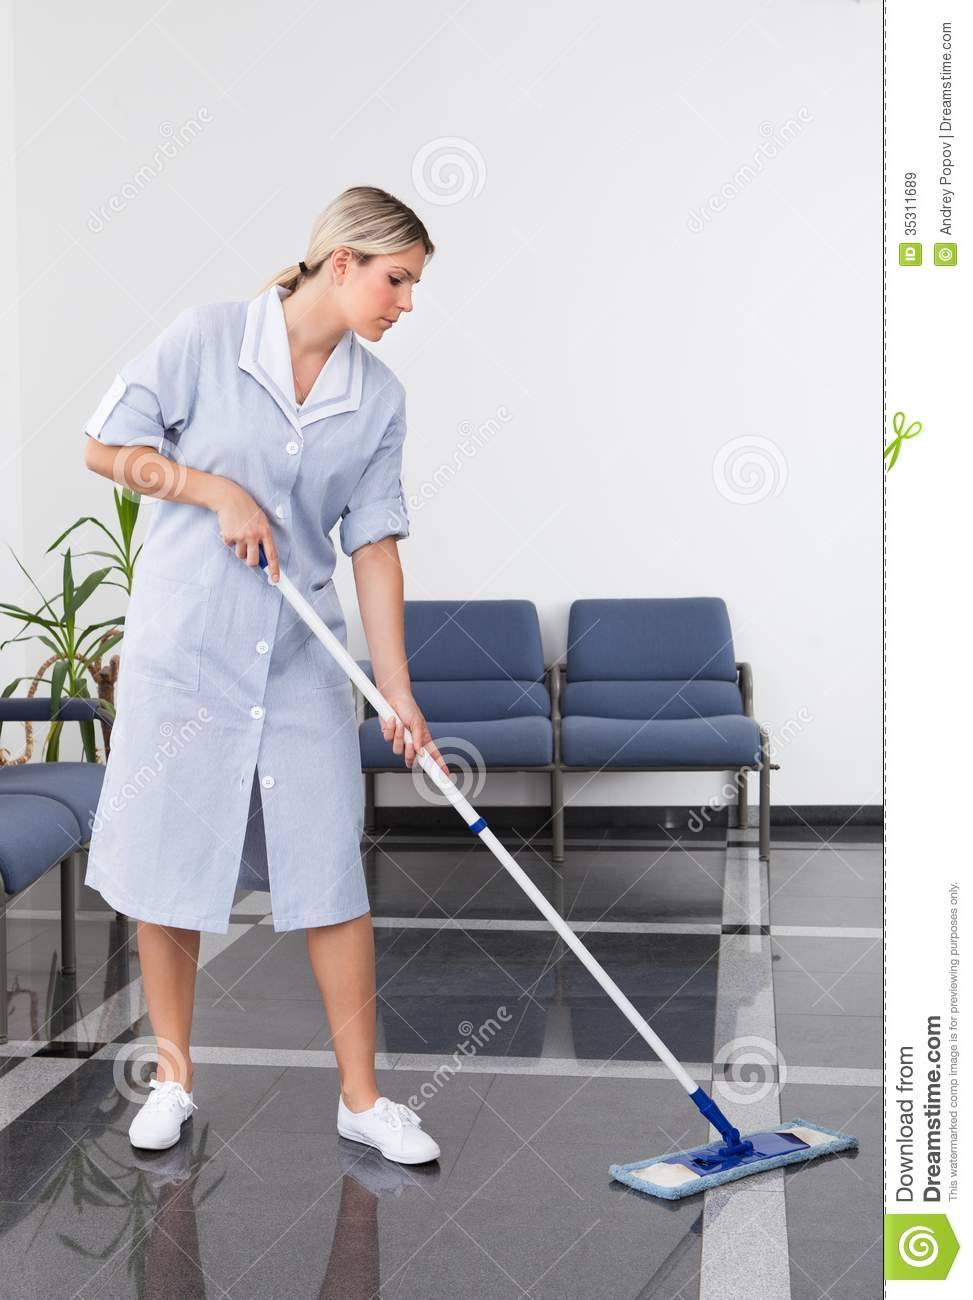 Maid Cleaning The Floor Stock Image Image Of Floor Broom